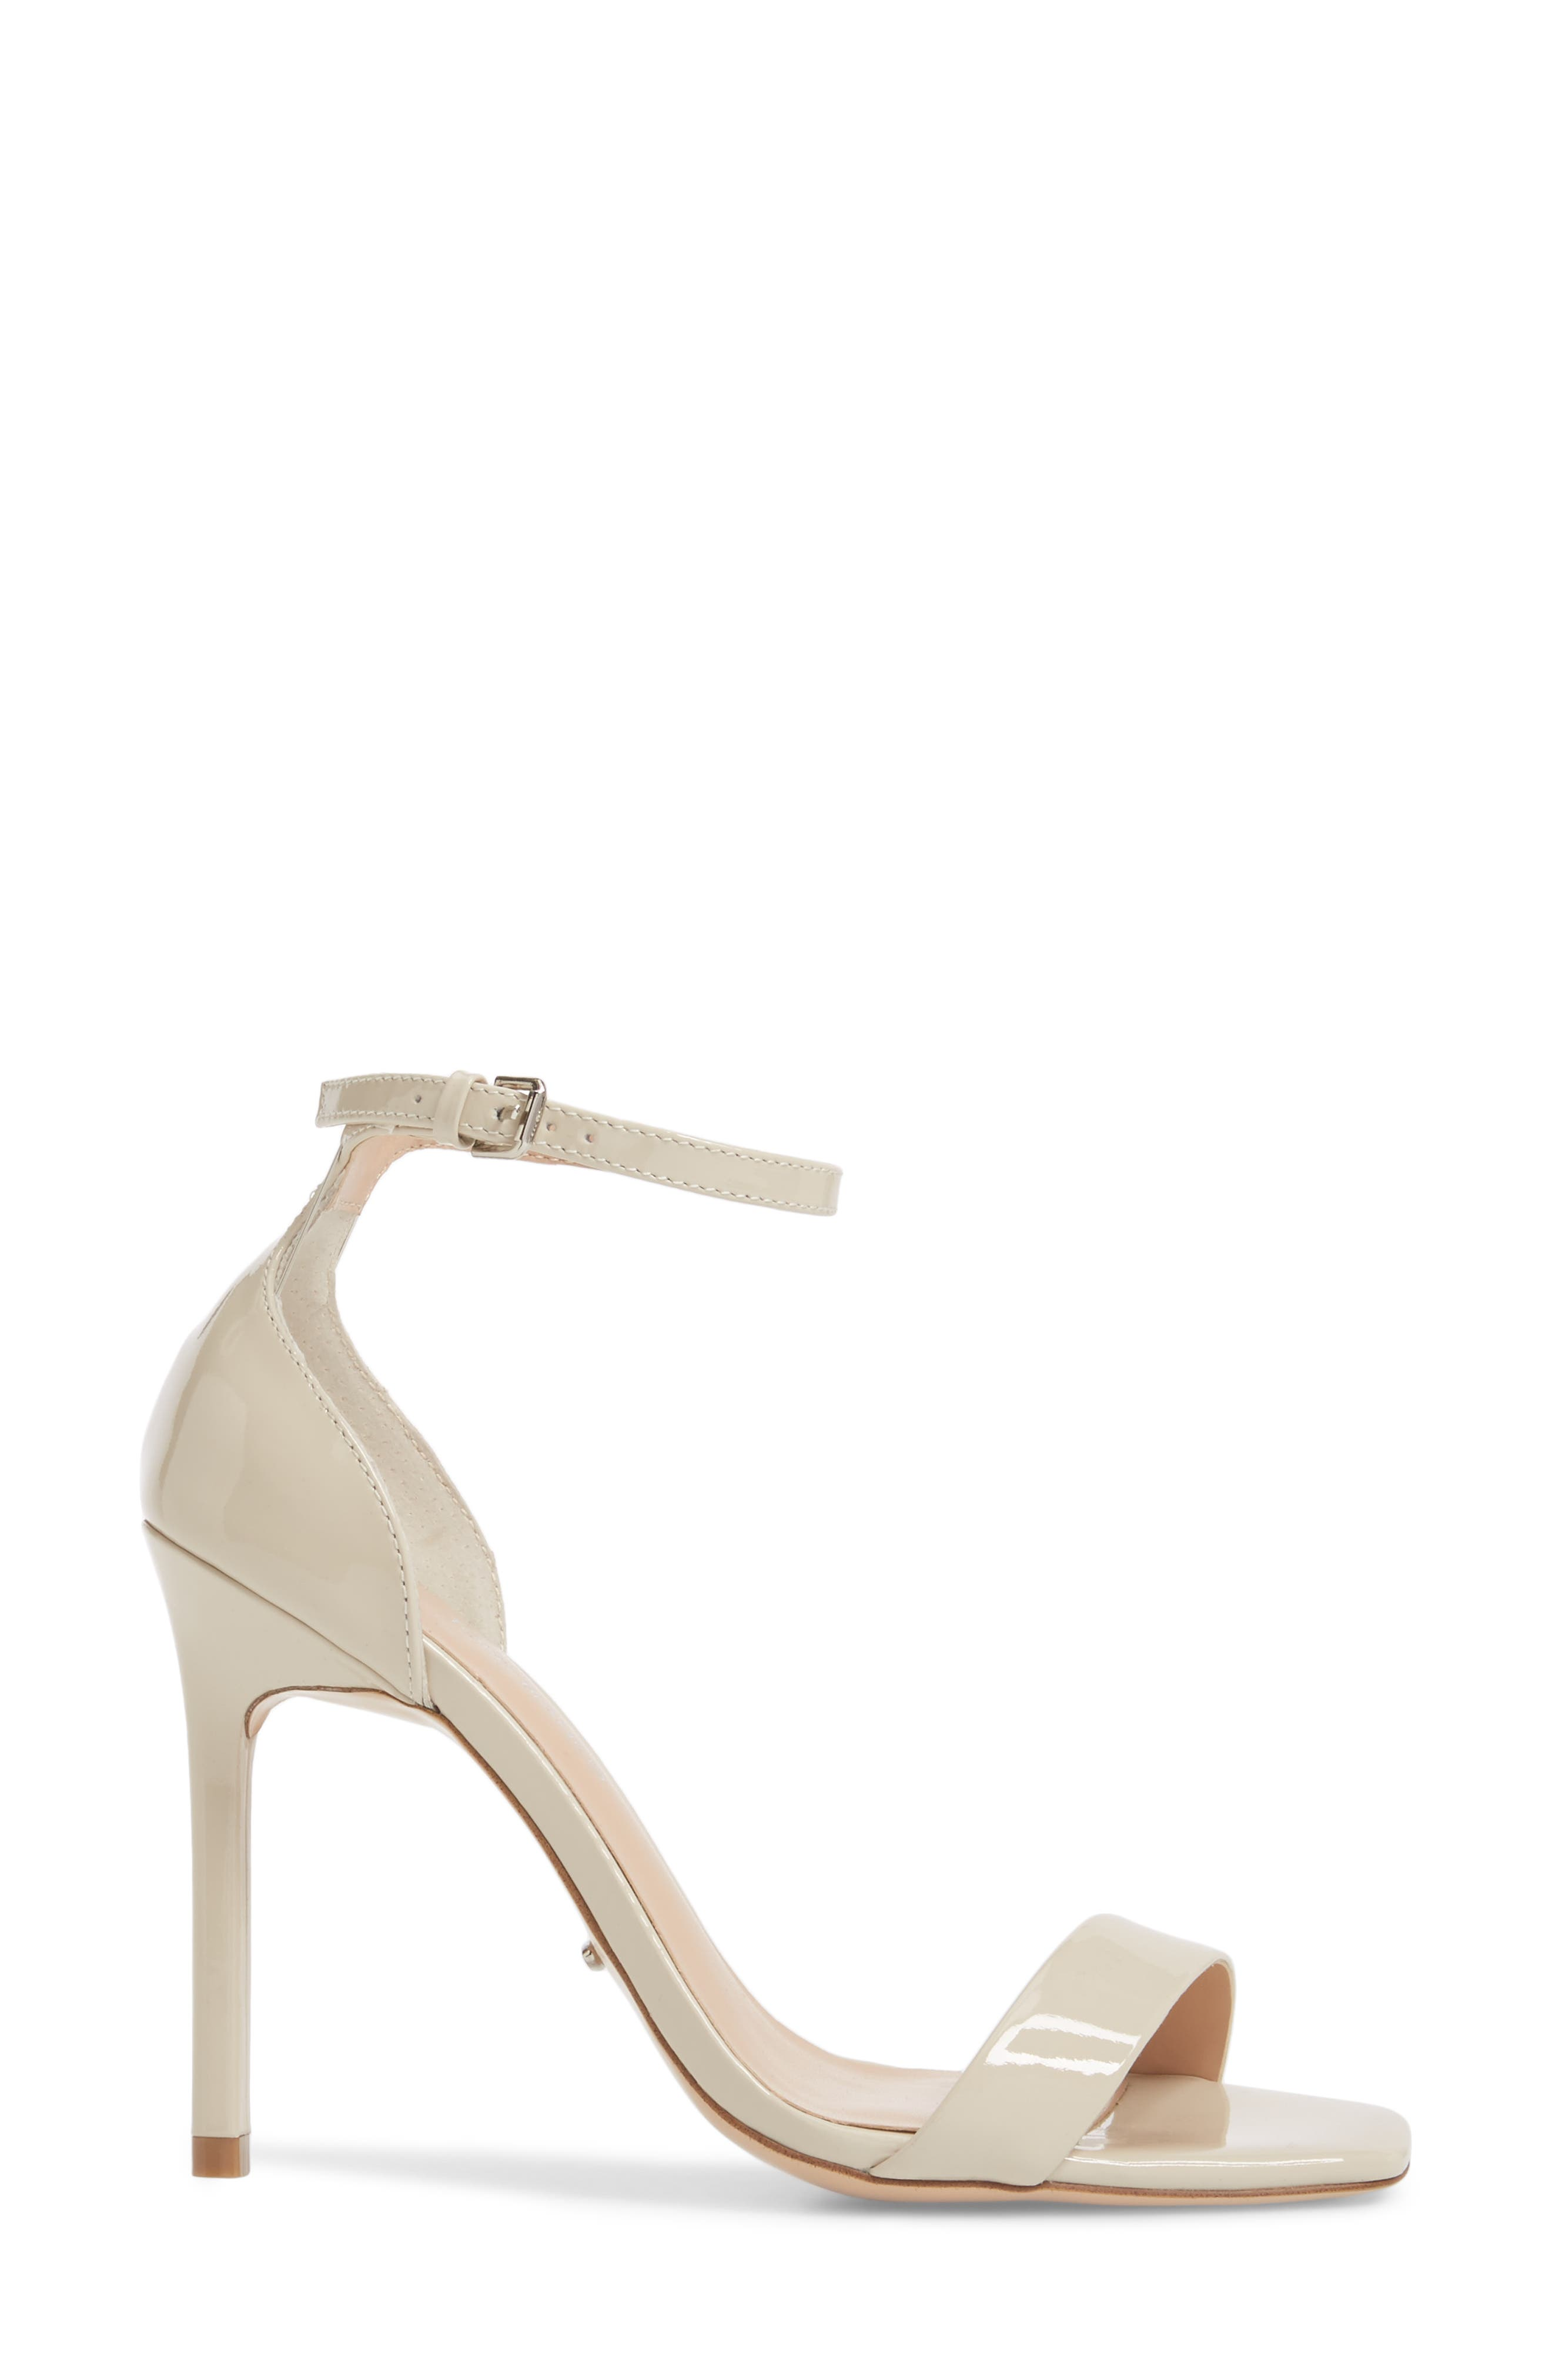 Sacha Ankle Strap Sandal,                             Alternate thumbnail 3, color,                             Oyster Patent Leather